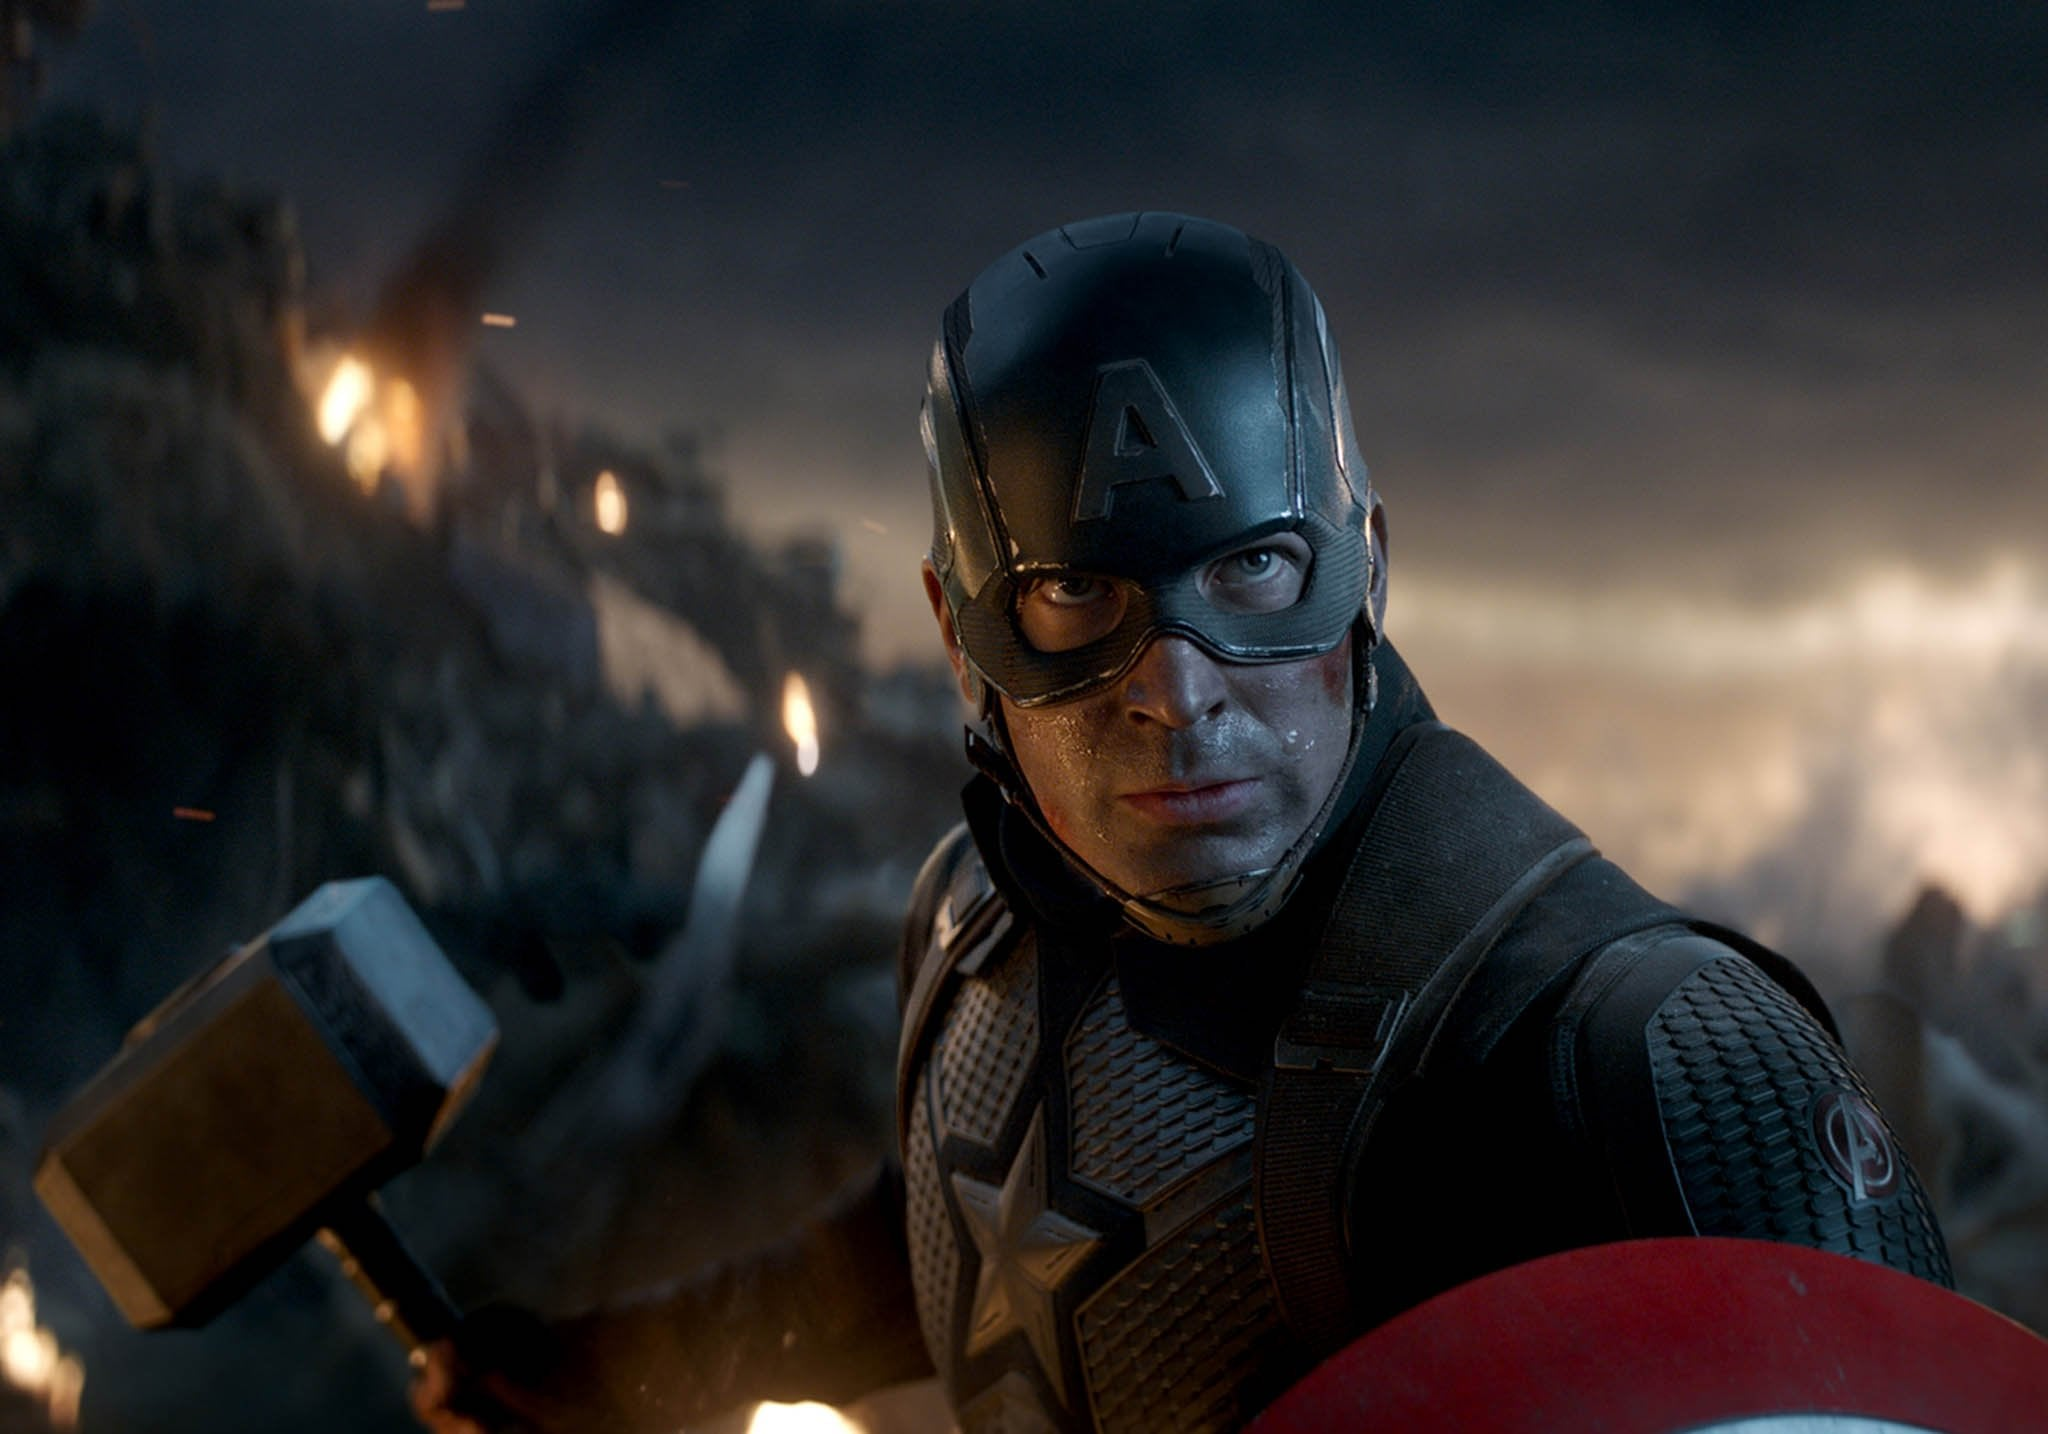 Avengers Endgame Check Out Some Never Before Seen Images From